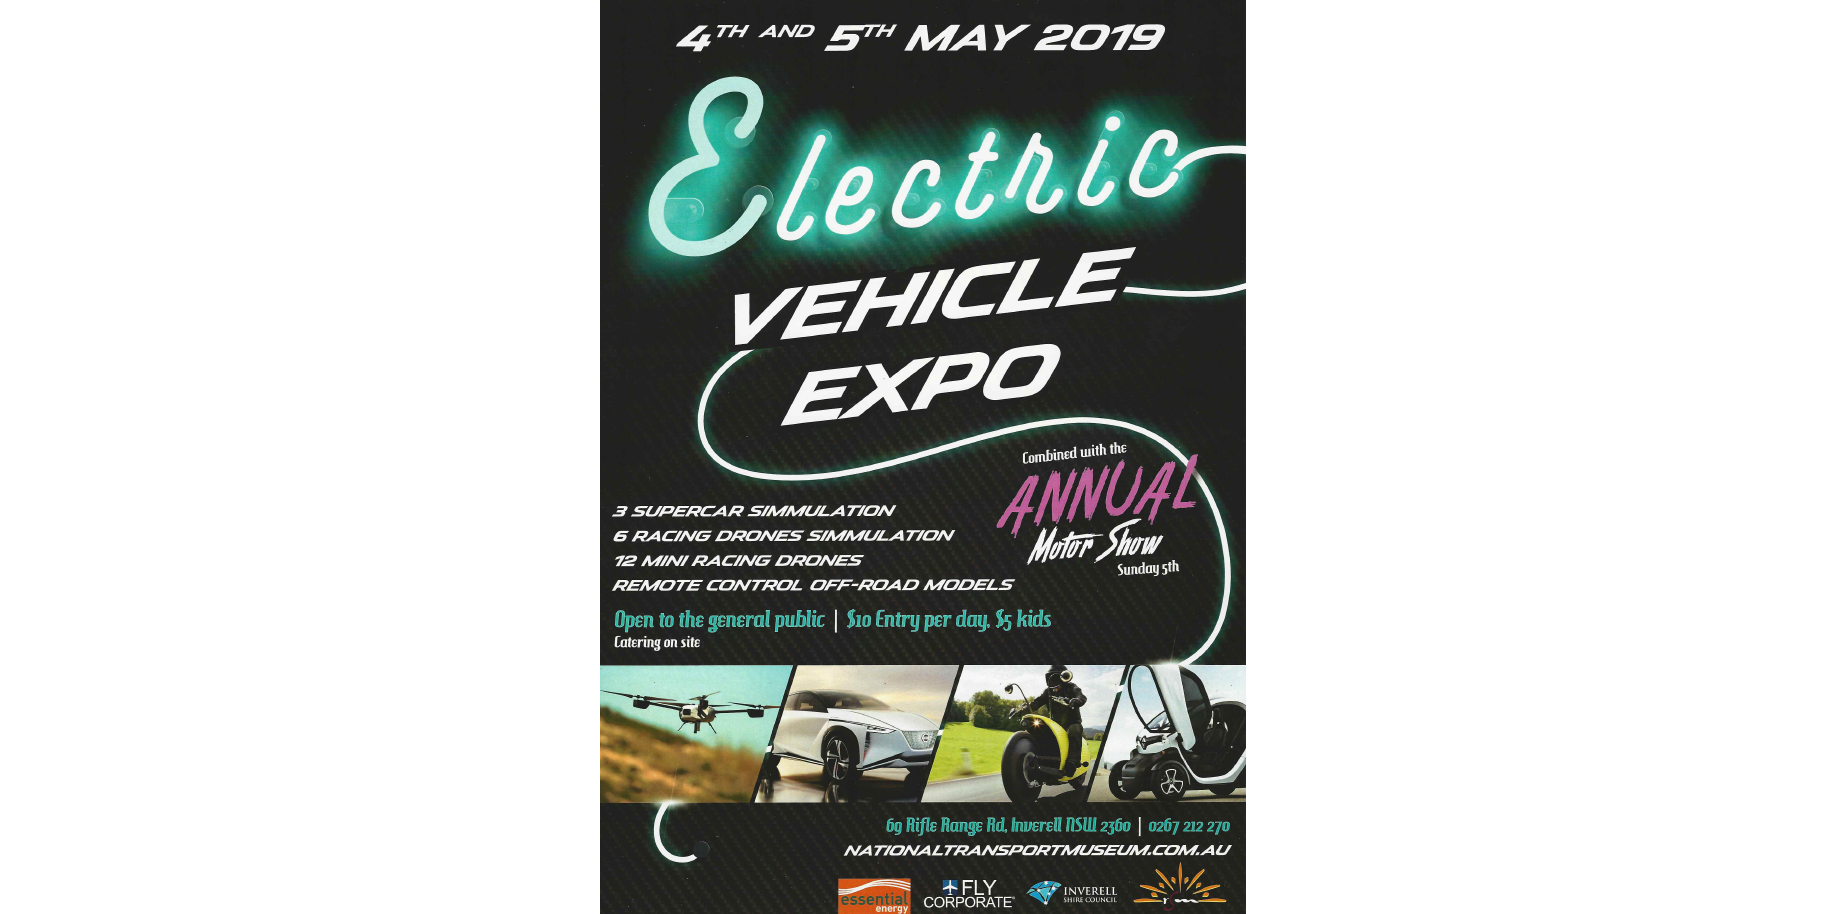 Electric Vehicle Expo Inverell NSW - National Transport Museum